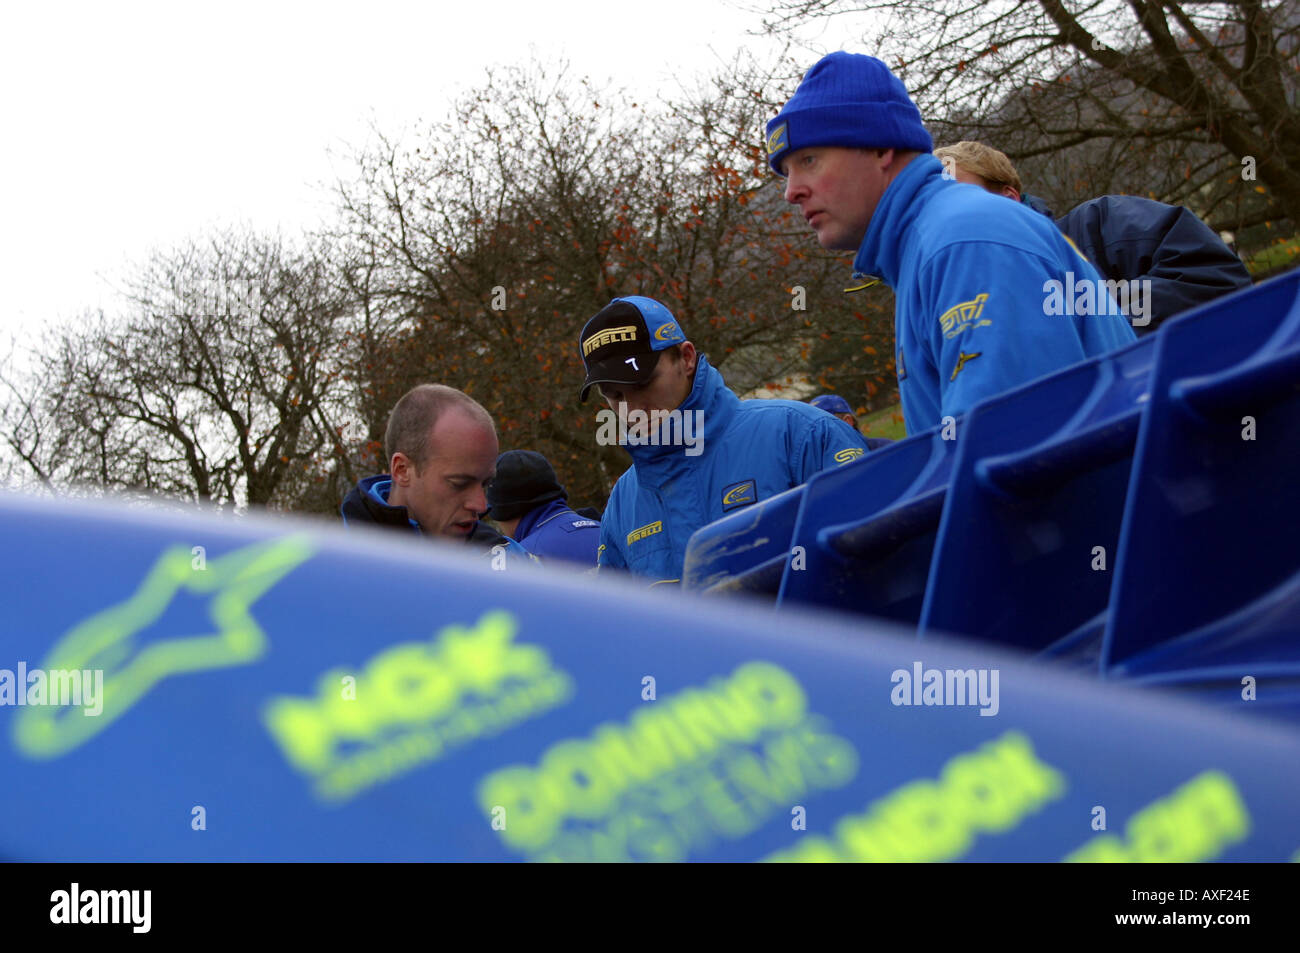 petter solberg phill mills and subaru rally team in regroup halt at wales rallyg - Stock Image